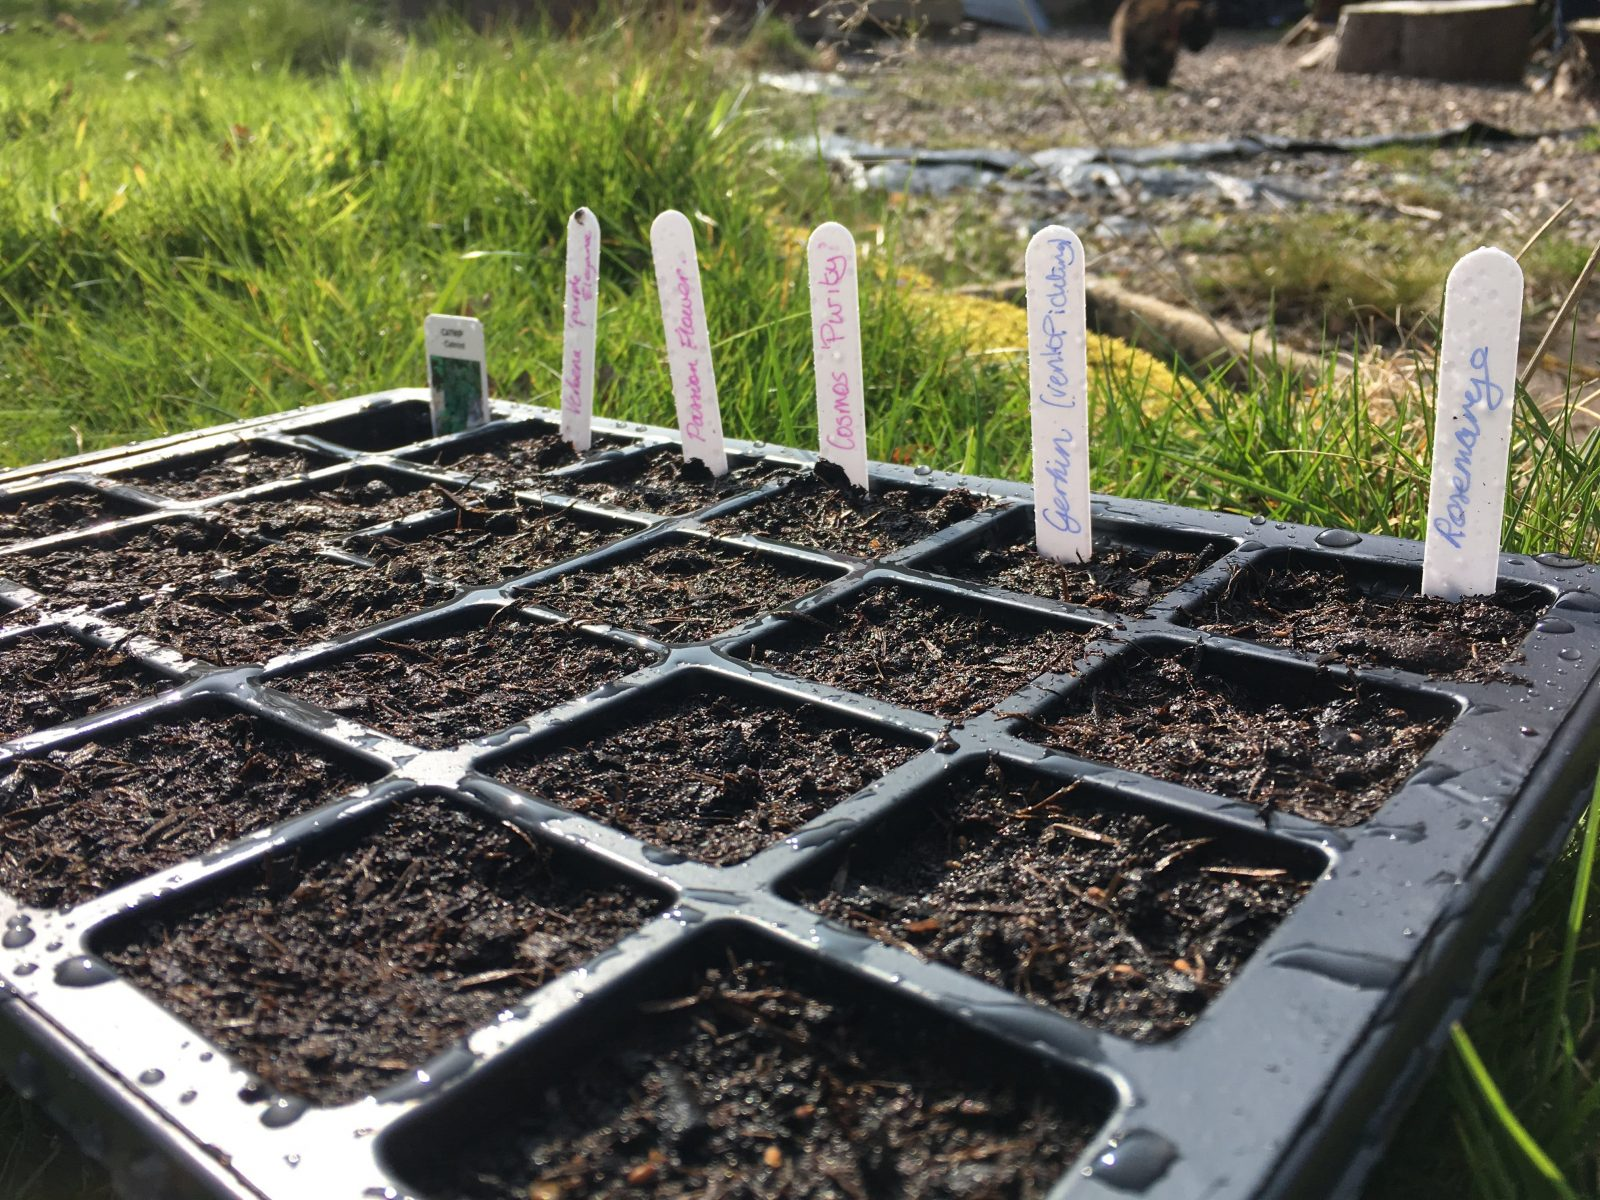 Seeds in propagation tray